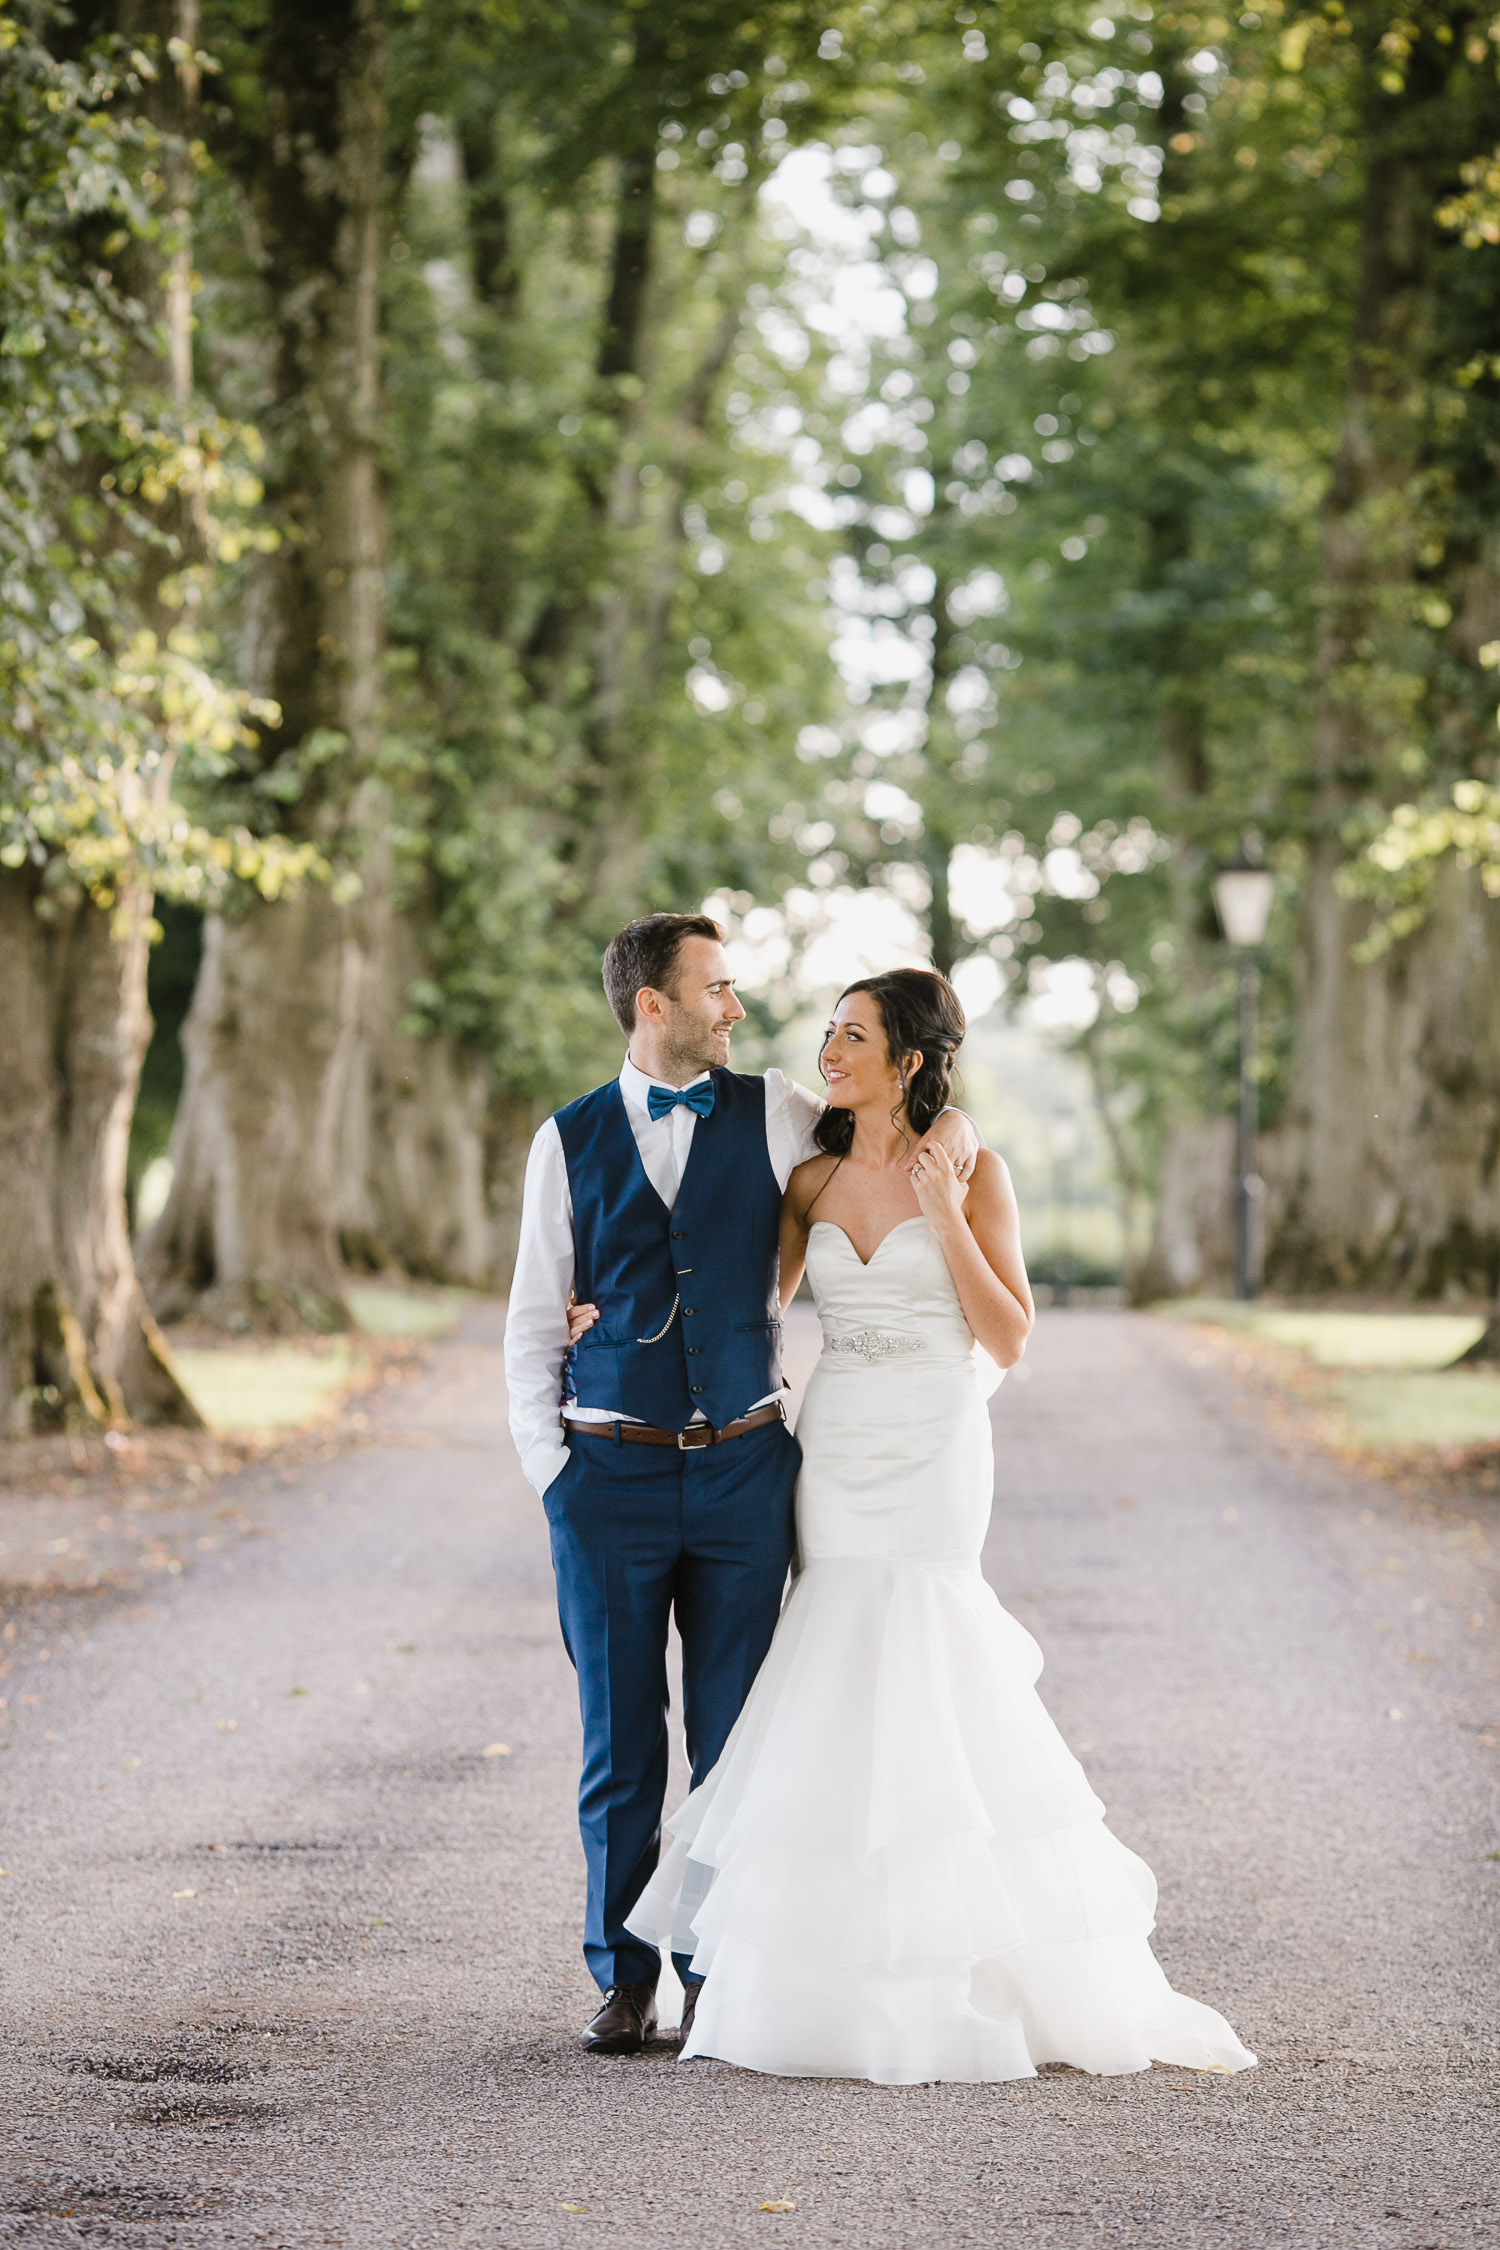 tankardstown house wedding photo 97.jpg